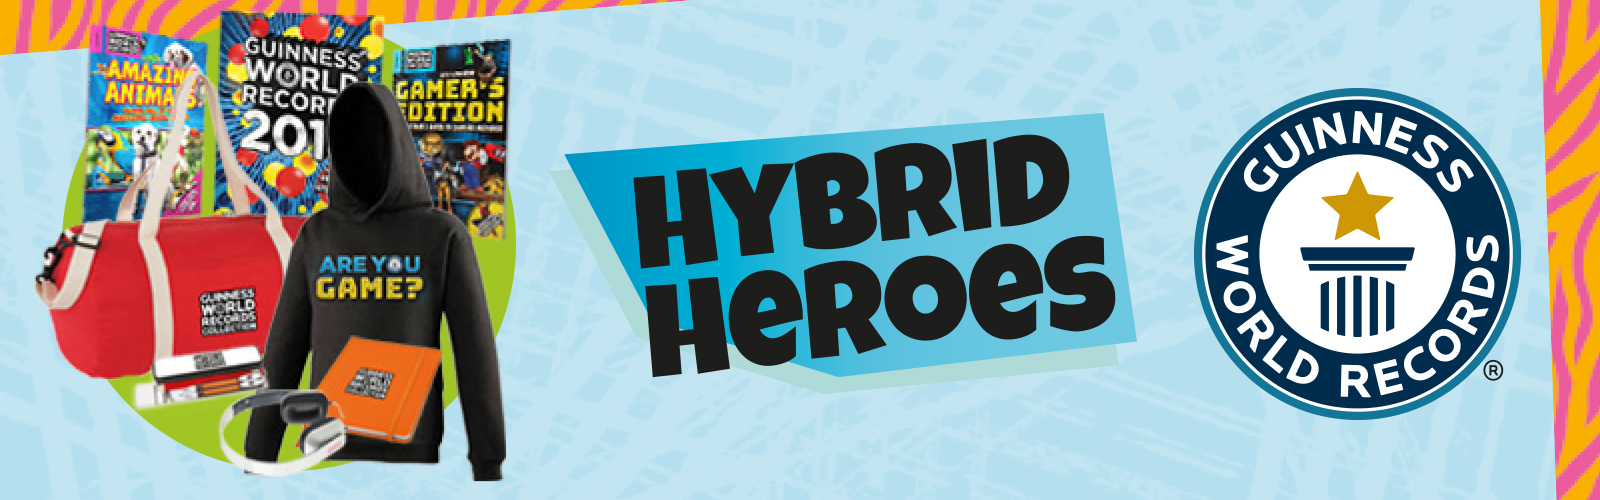 Hybrid Heroes Guinness World Records